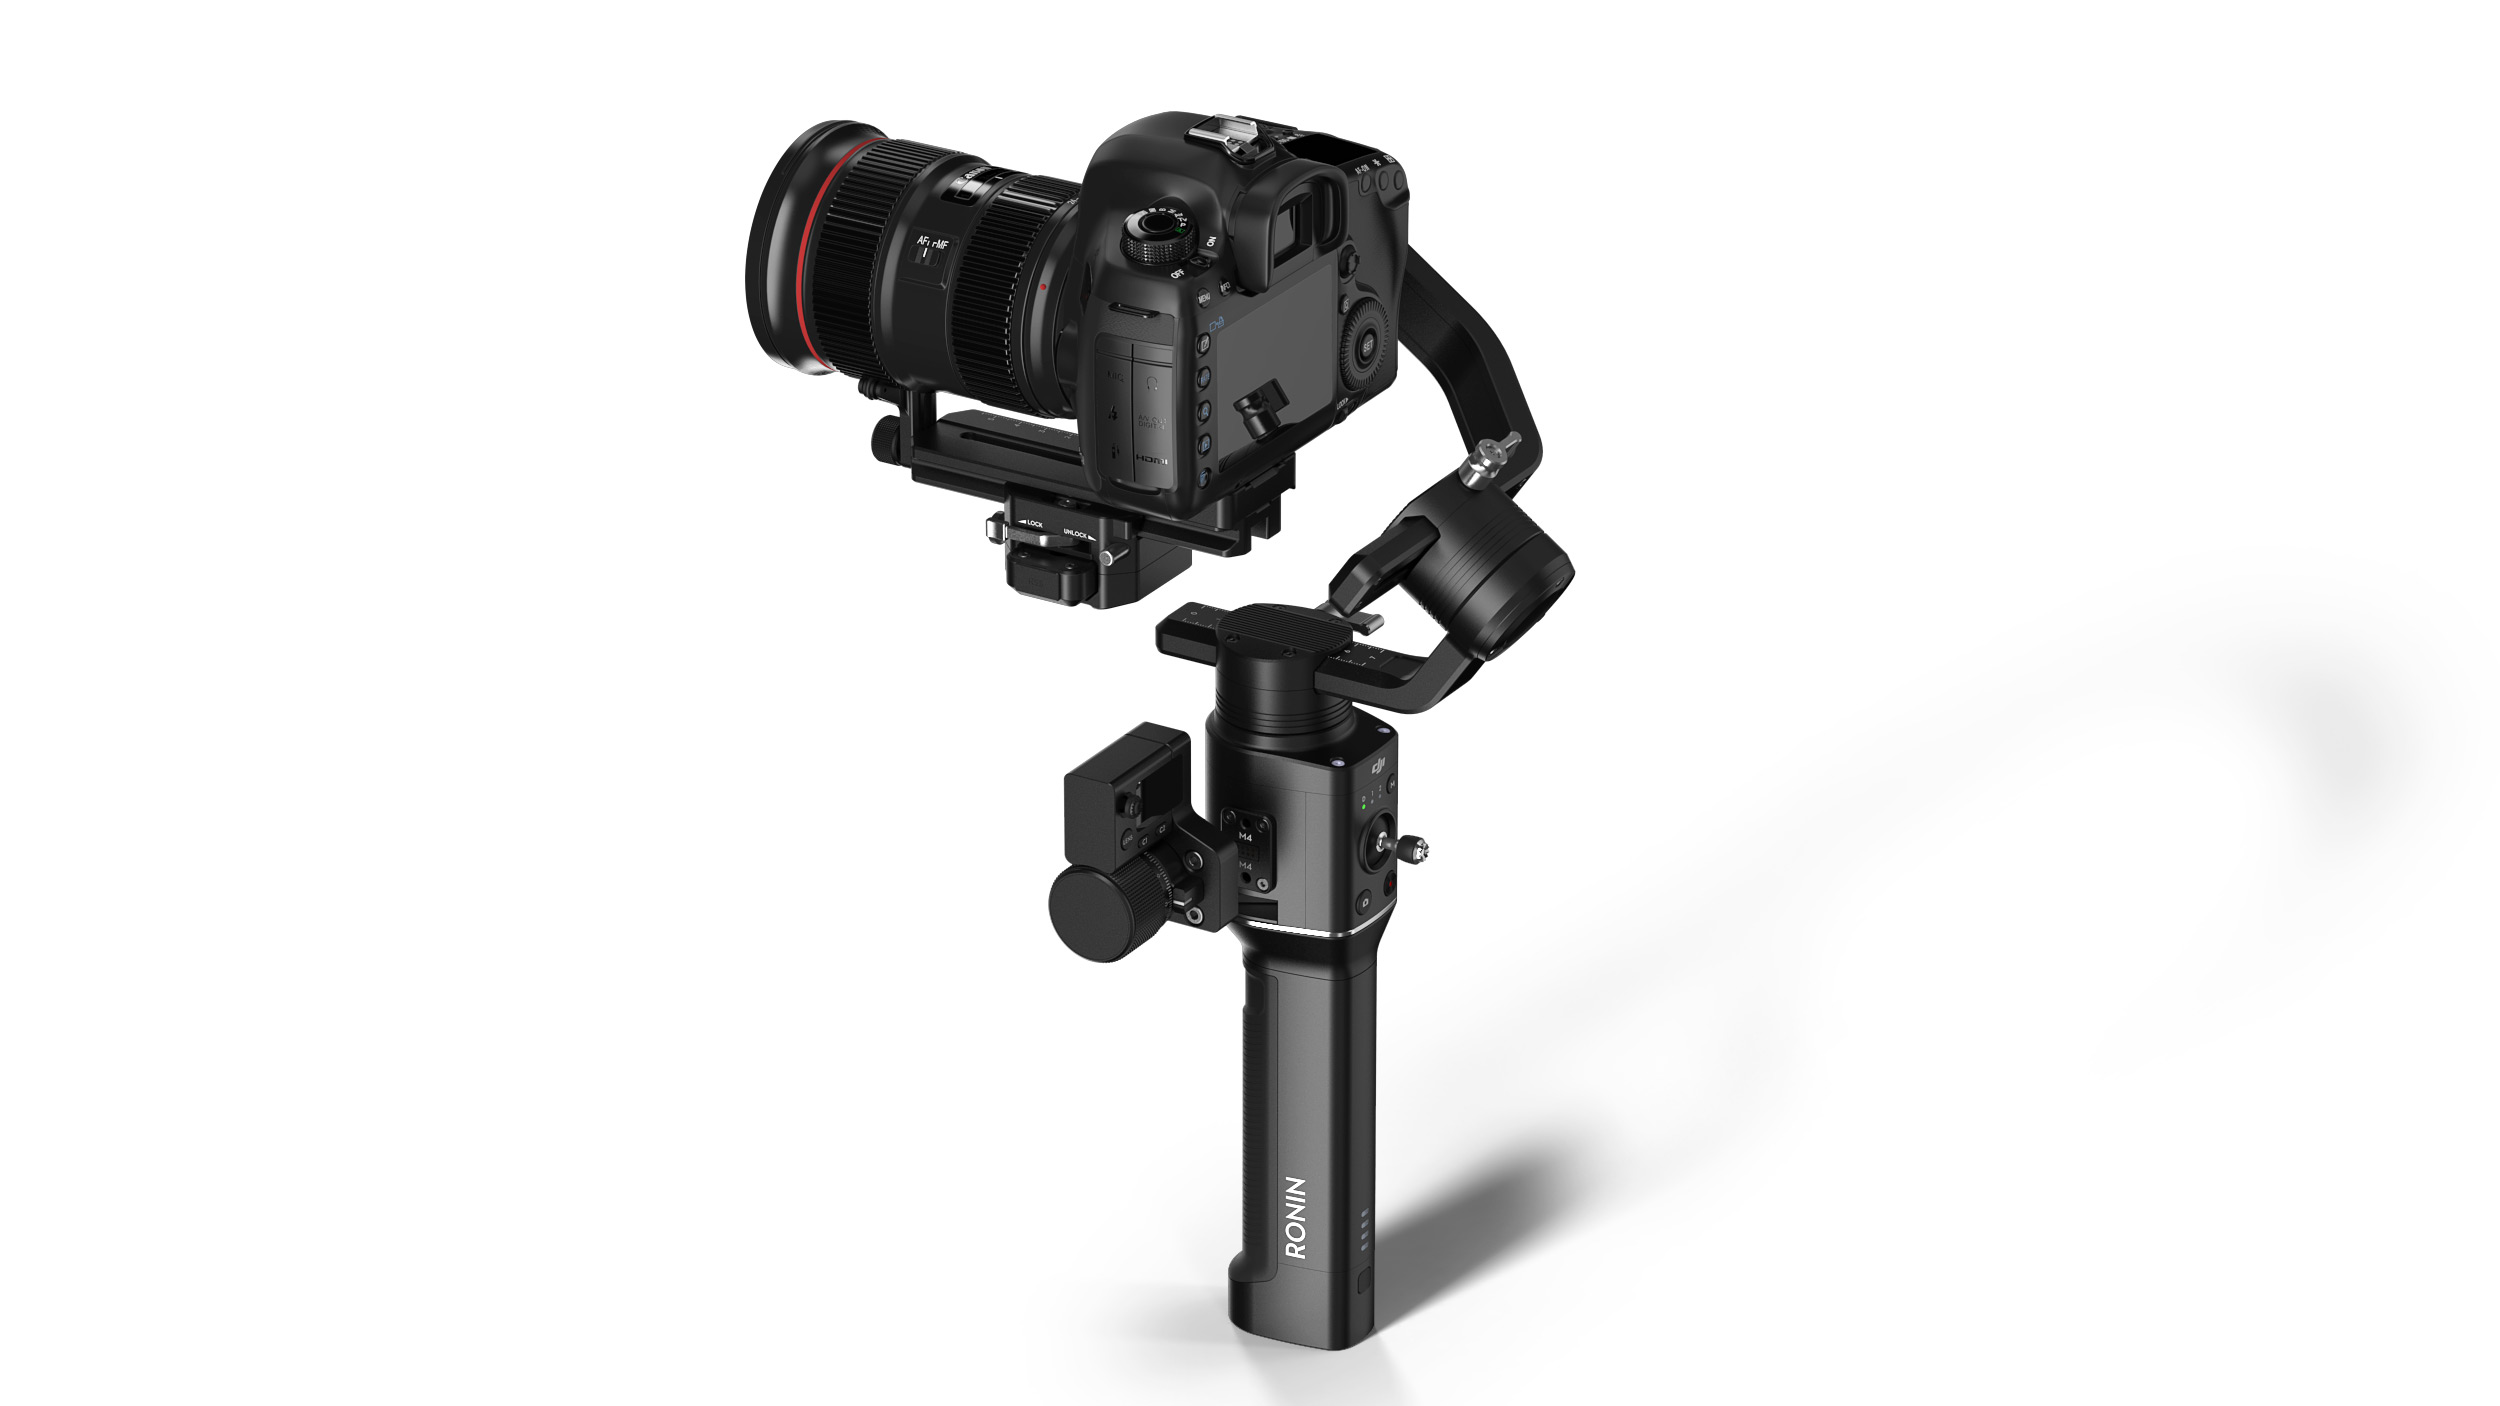 Dji Introduces Ronin S Stabilizer For Dslr And Mirrorless Cameras Zhiyun Crane 2 3 Axis With Follow Fokus Mirorrles Digital Photography Review